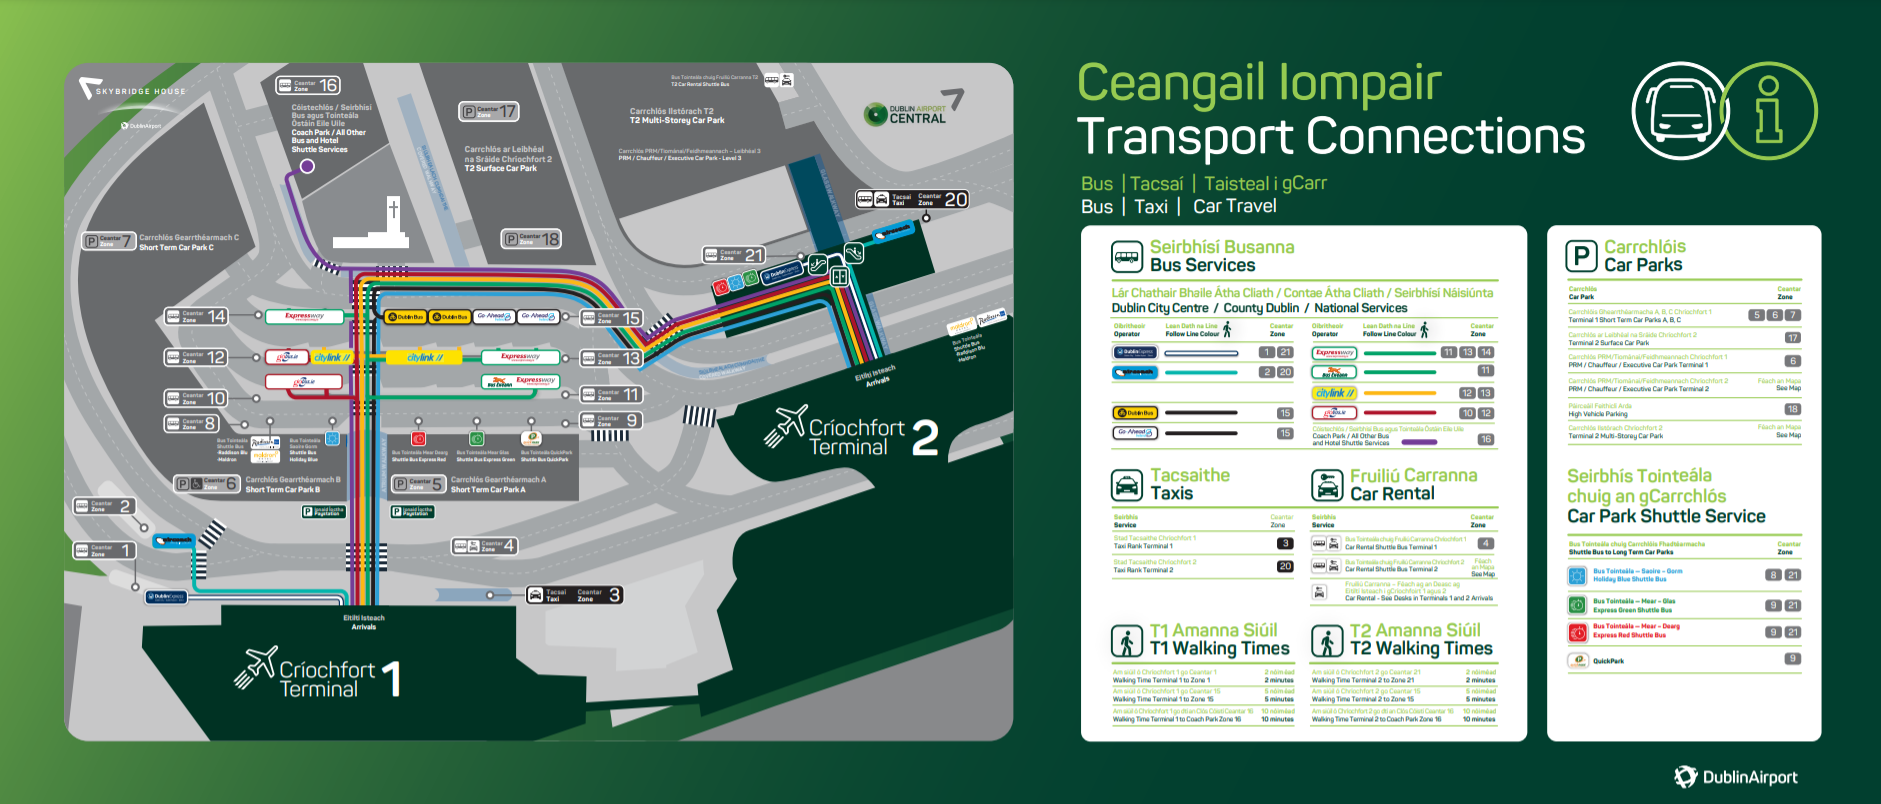 Dublin airport transportation and bus services map.